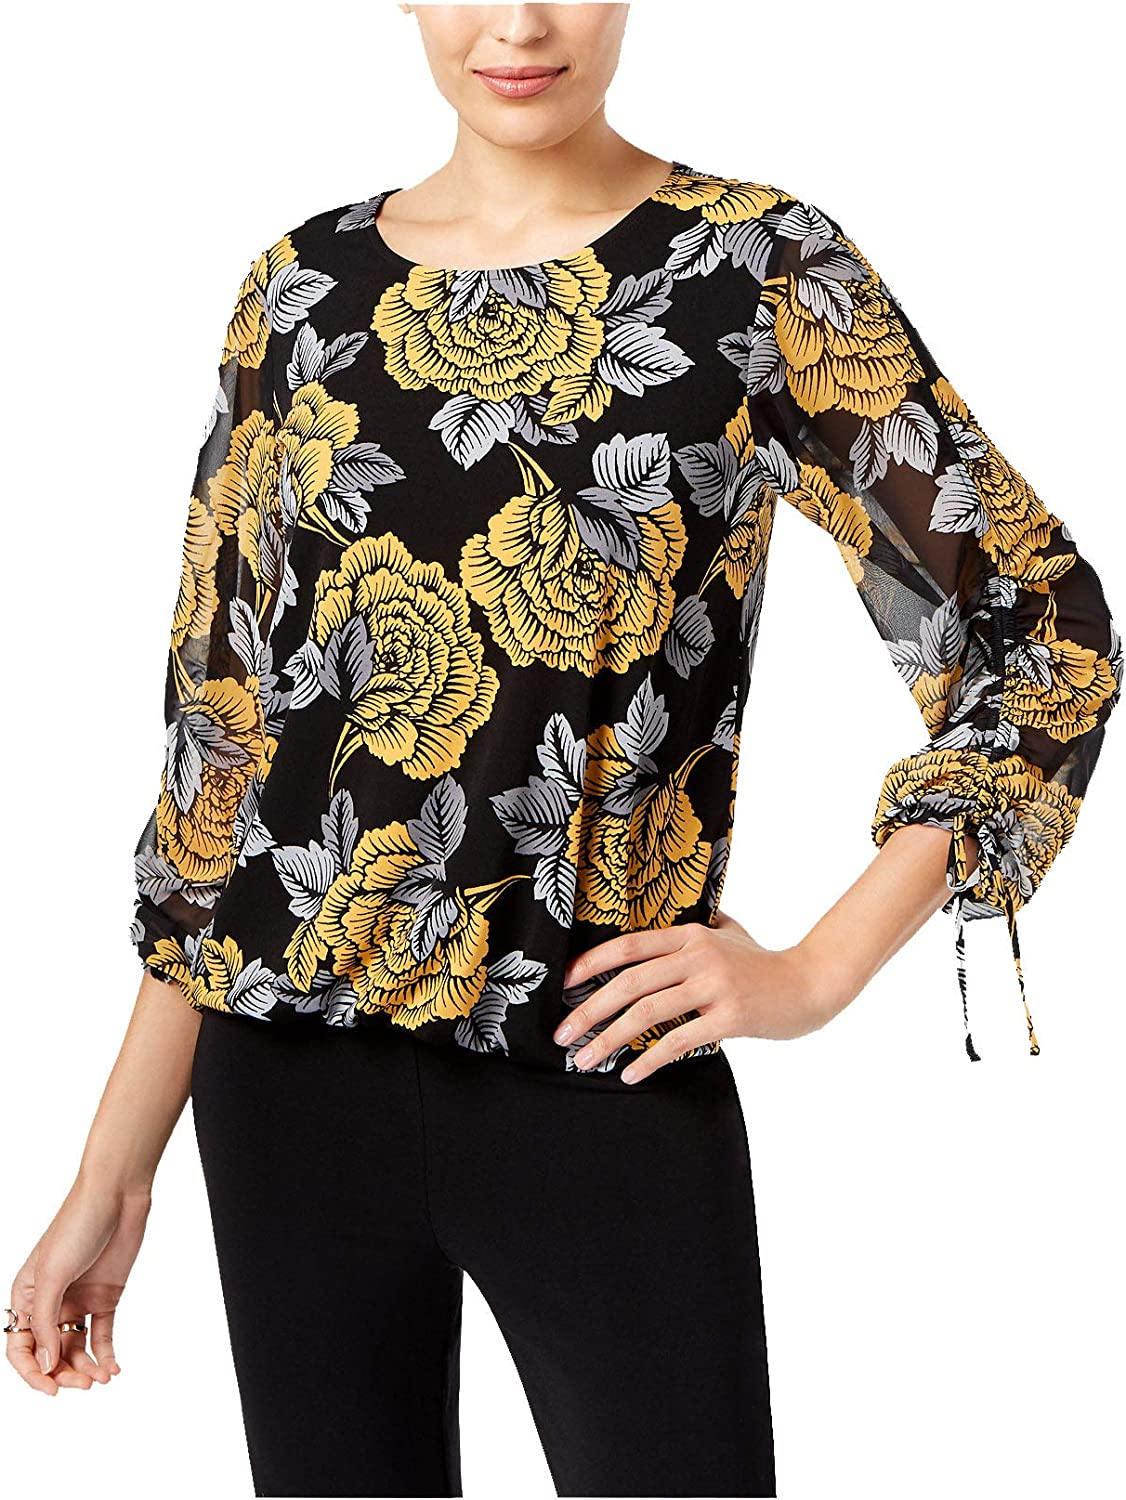 Alfani Women's FloralPrint TieCuff Top